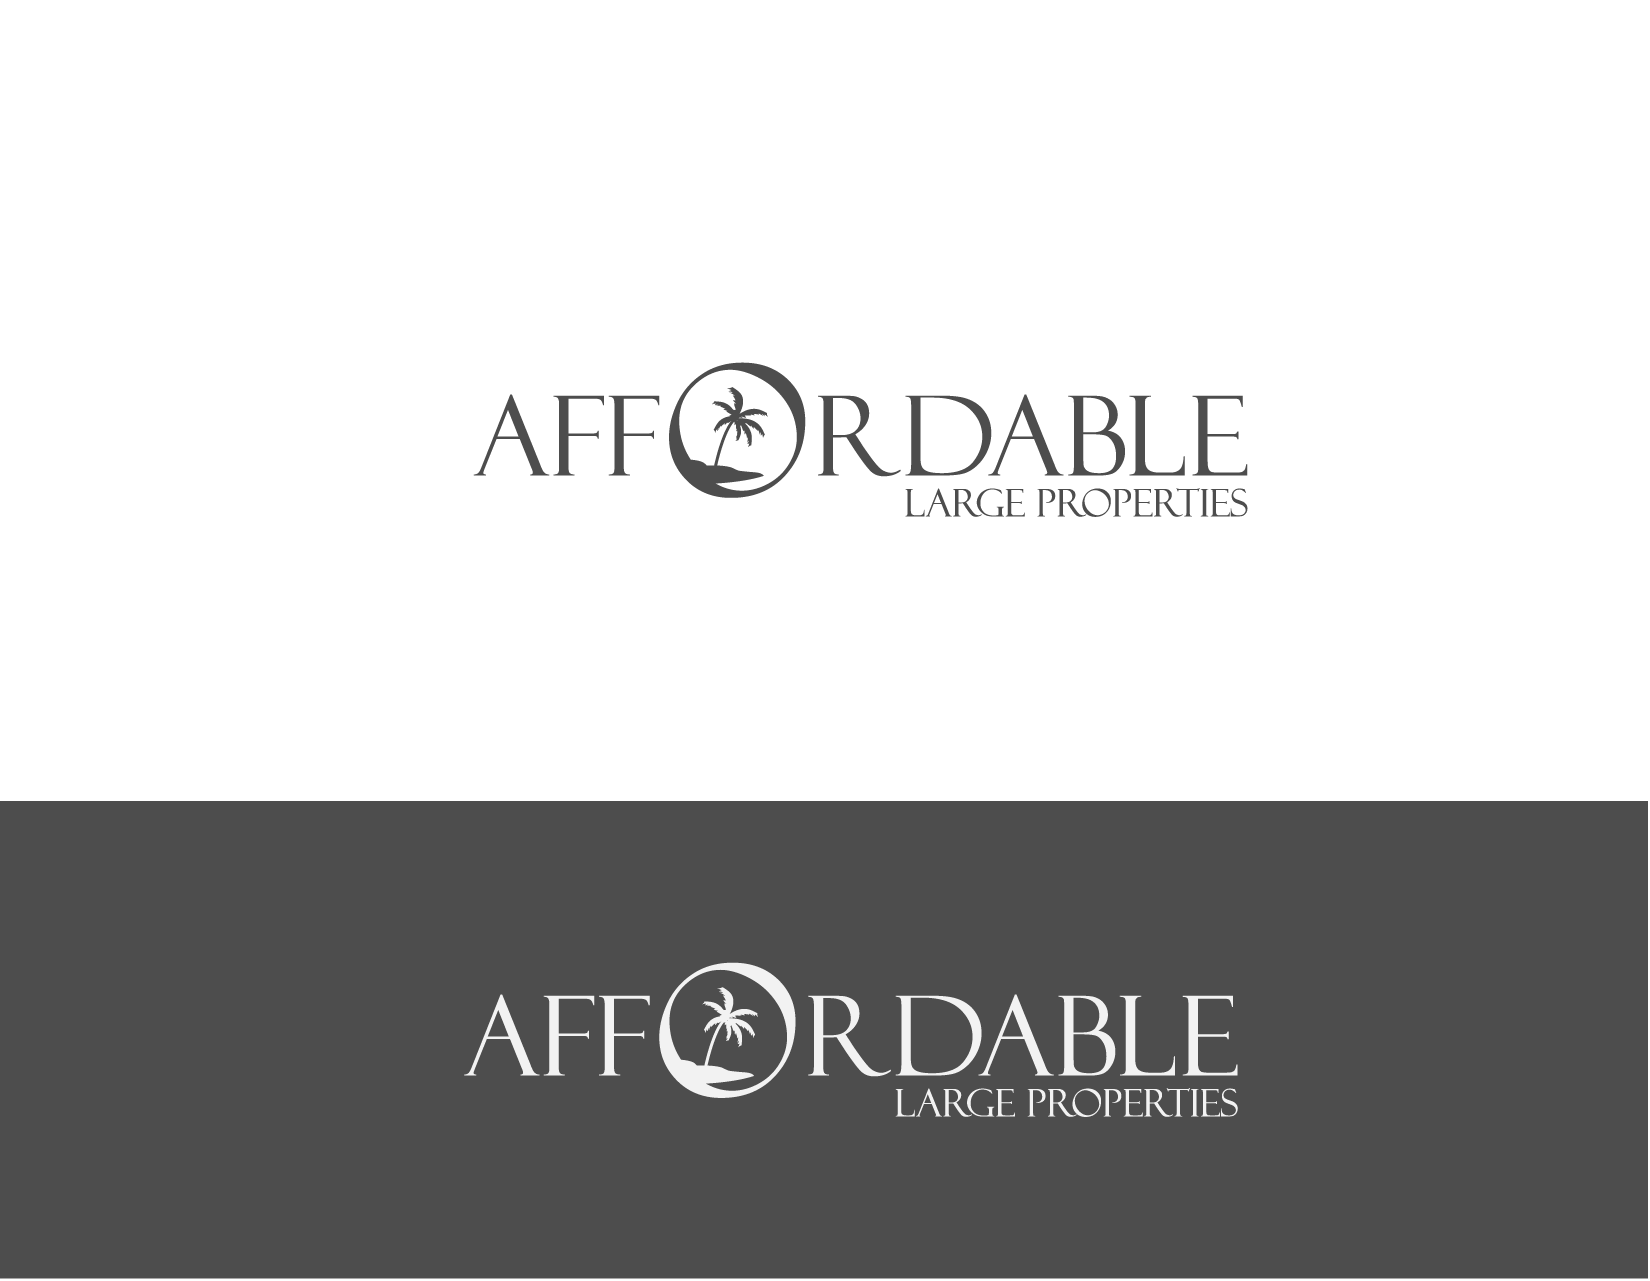 Help Affordable Large Properties with a new logo